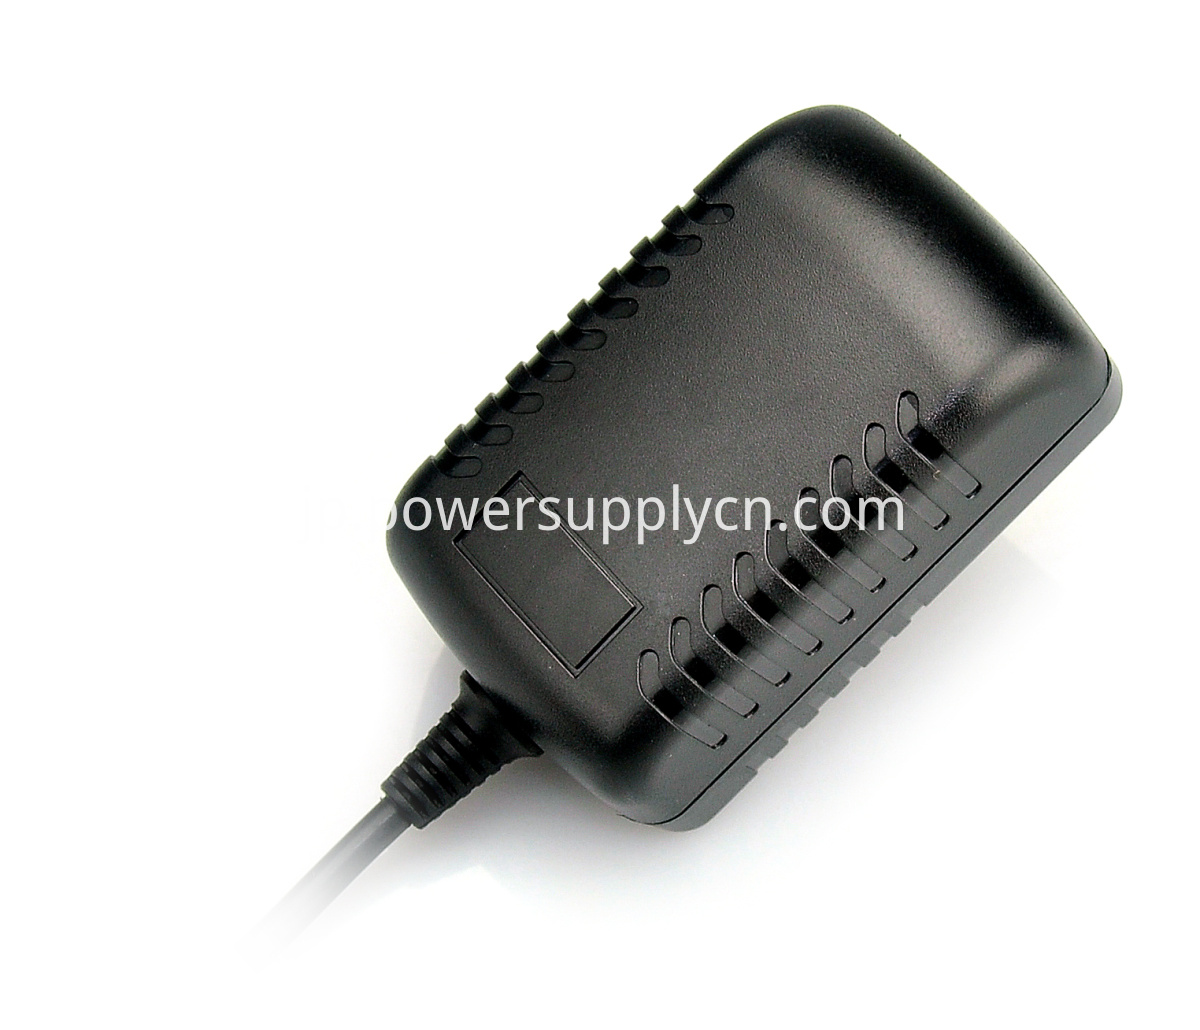 5v 1a power adapter